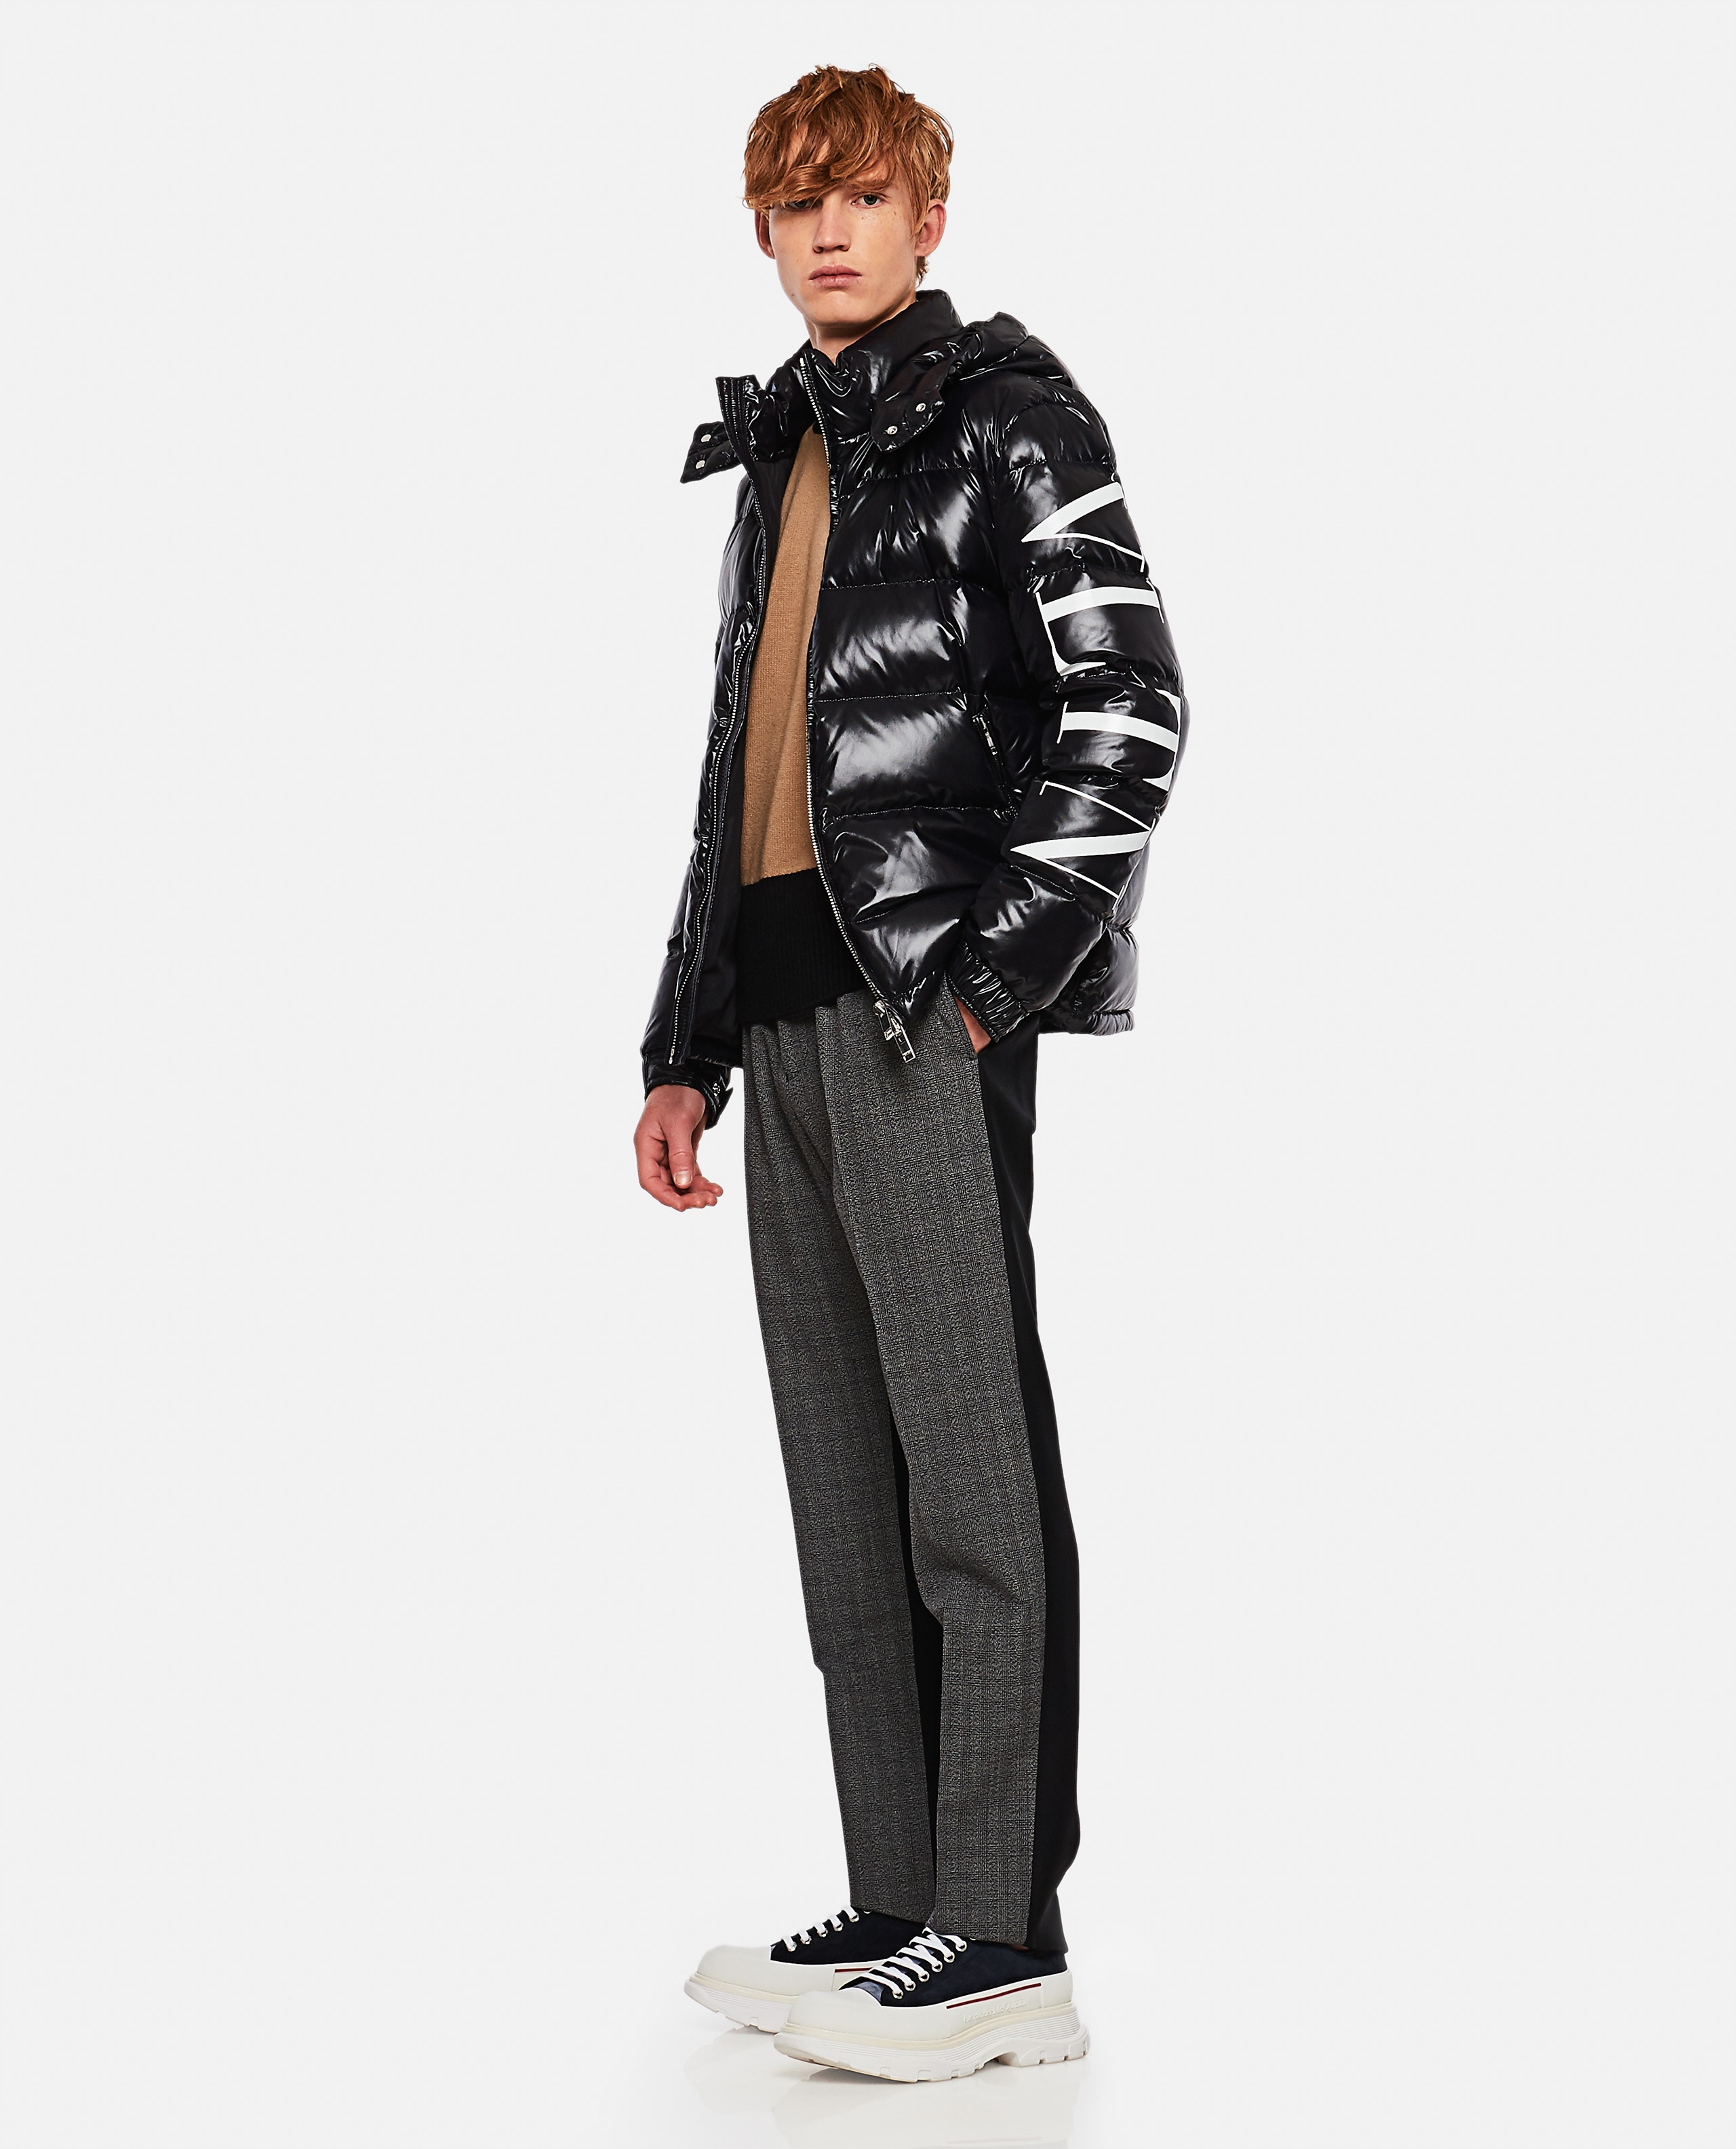 Prince of Wales trousers Men Givenchy 000280060041273 2